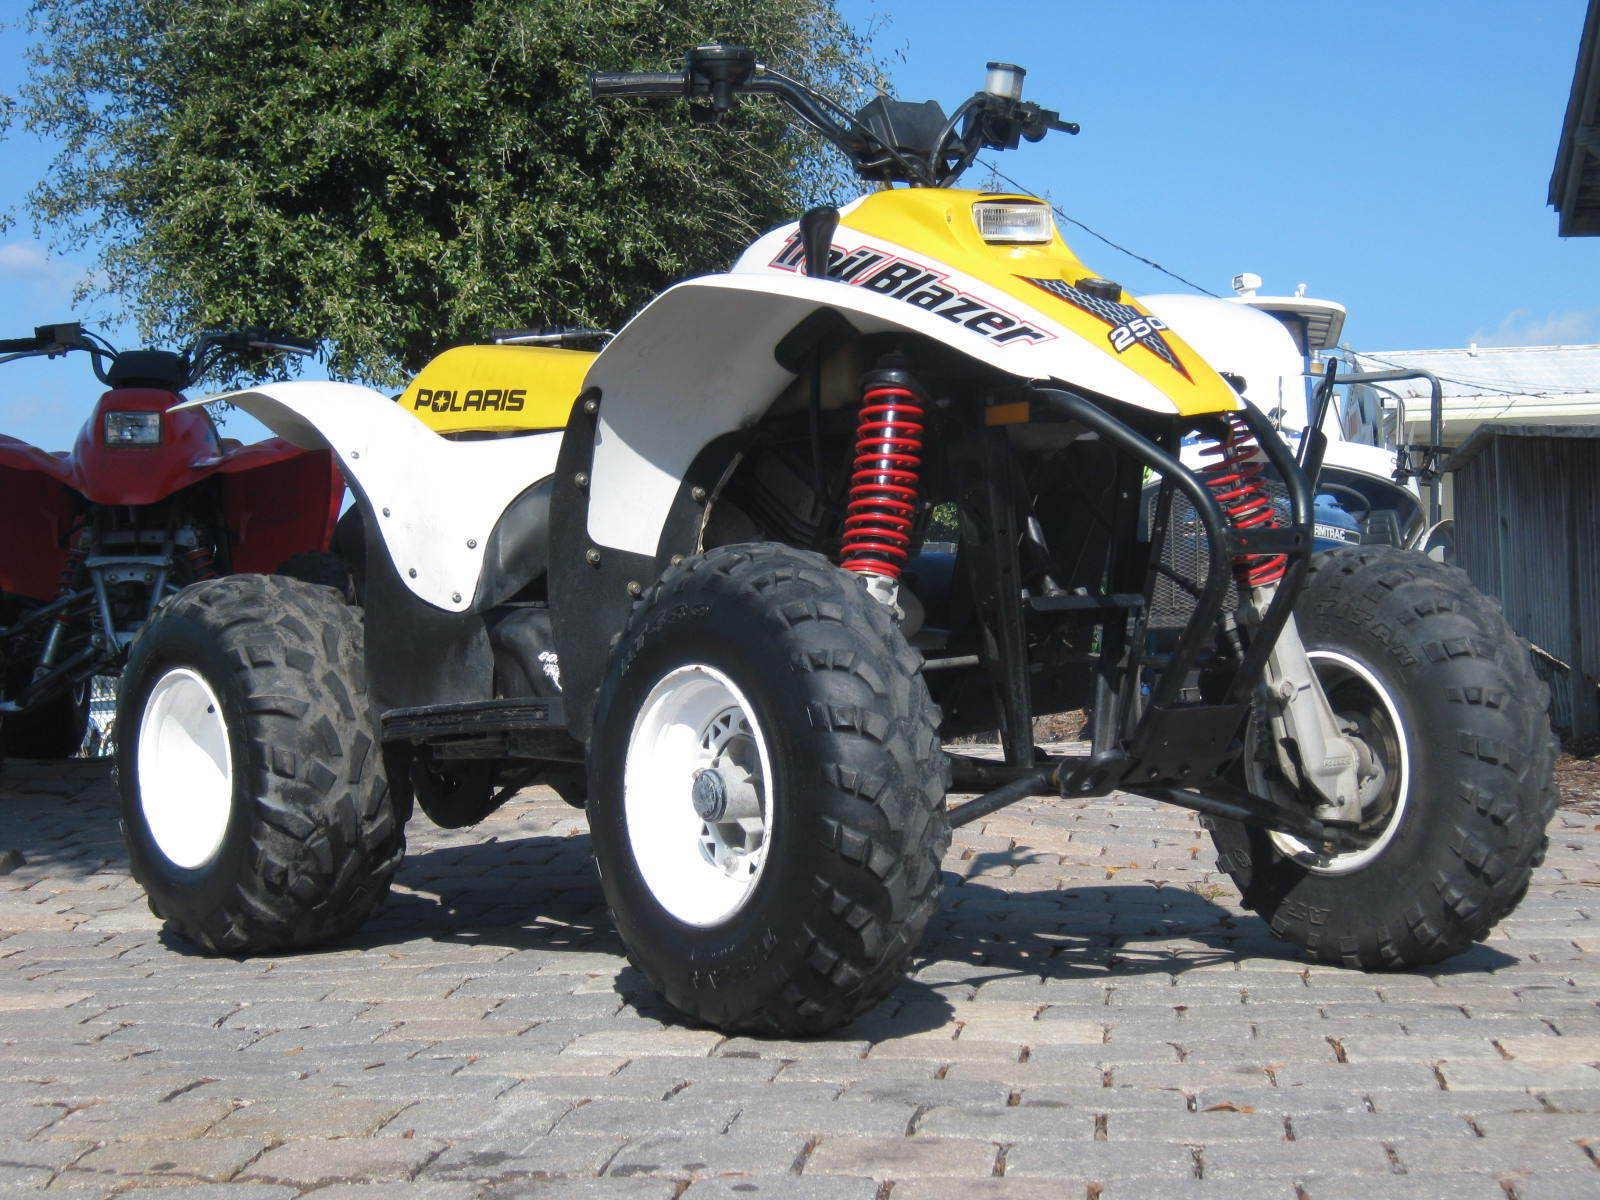 Polaris Trail Blazer 250 images #120575